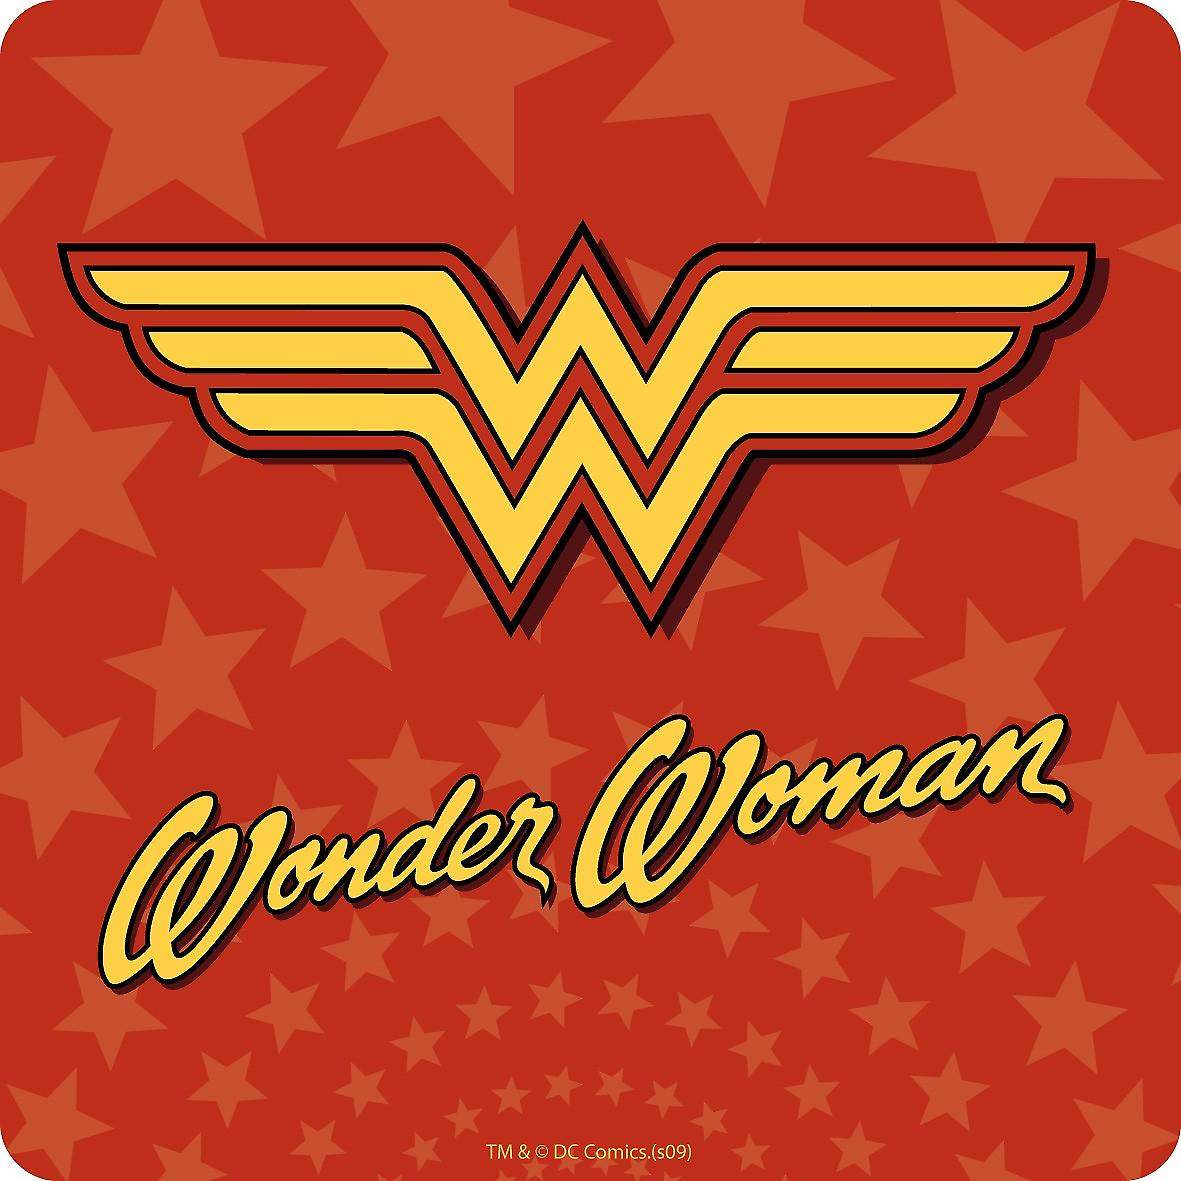 Wonder Woman (logo) drinks mat / coaster   (hb)